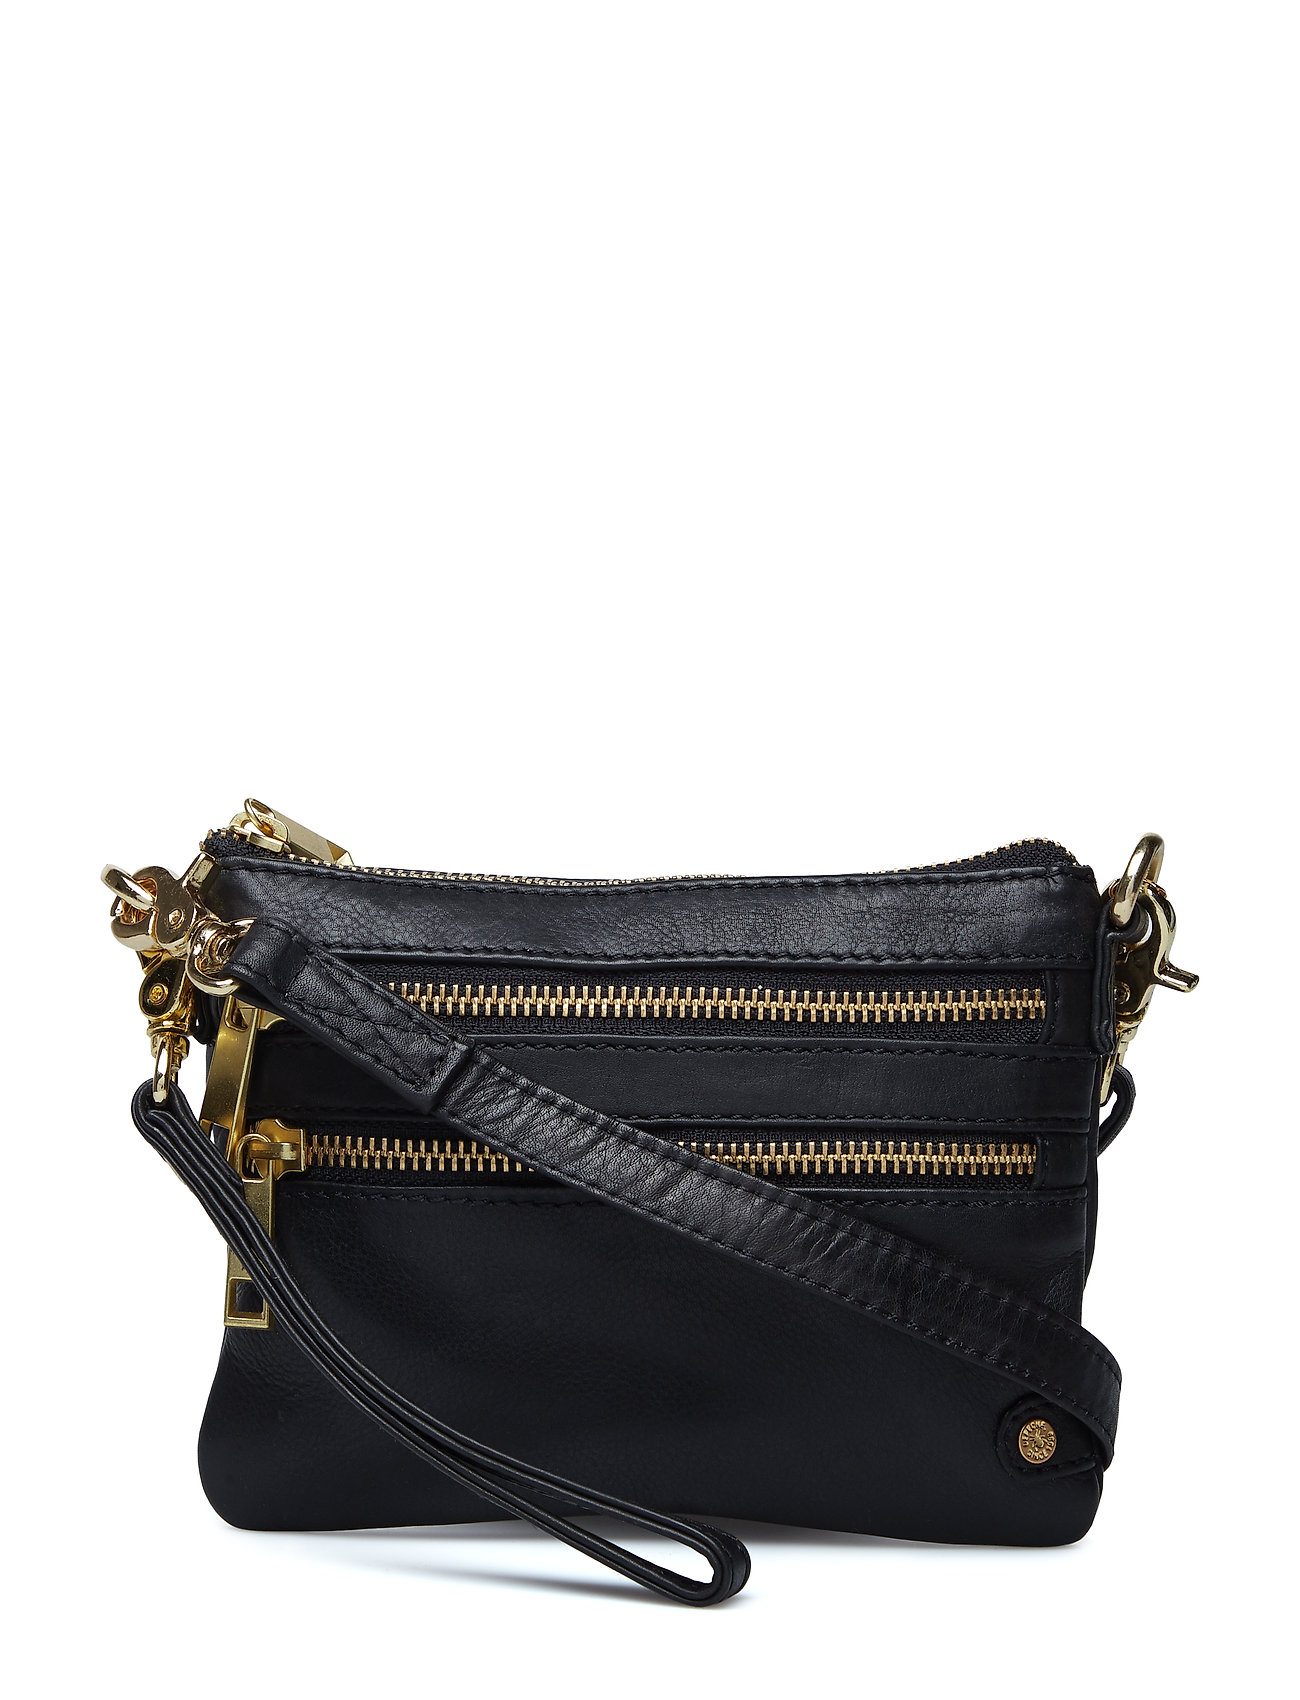 Image of Small Bag / Clutch Bags Small Shoulder Bags/crossbody Bags Sort DEPECHE (3142891397)